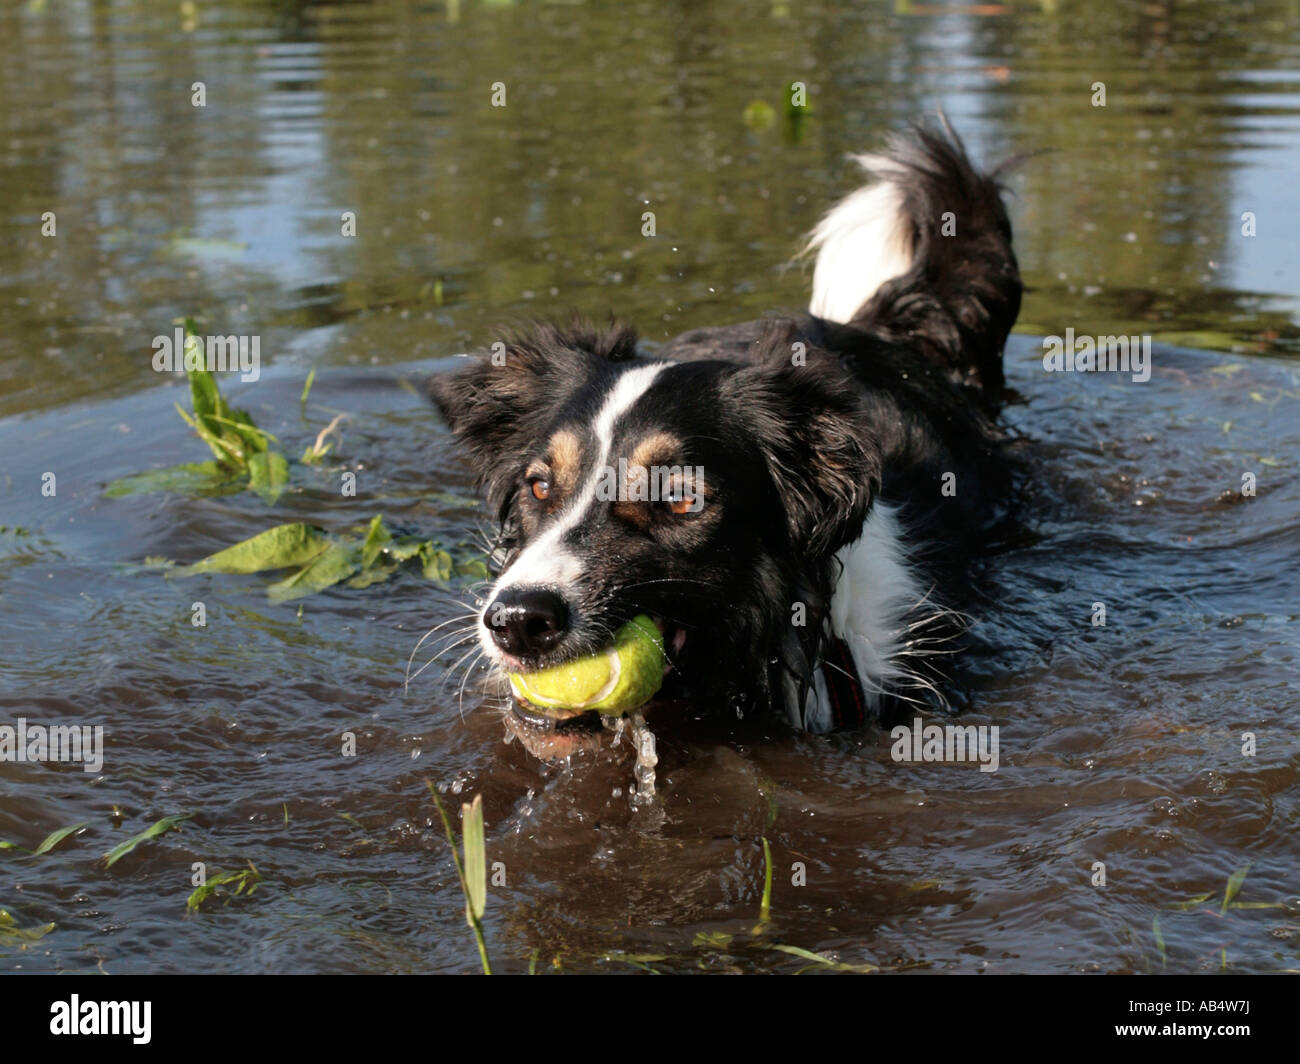 A collie in the water holding a ball in its mouth. - Stock Image